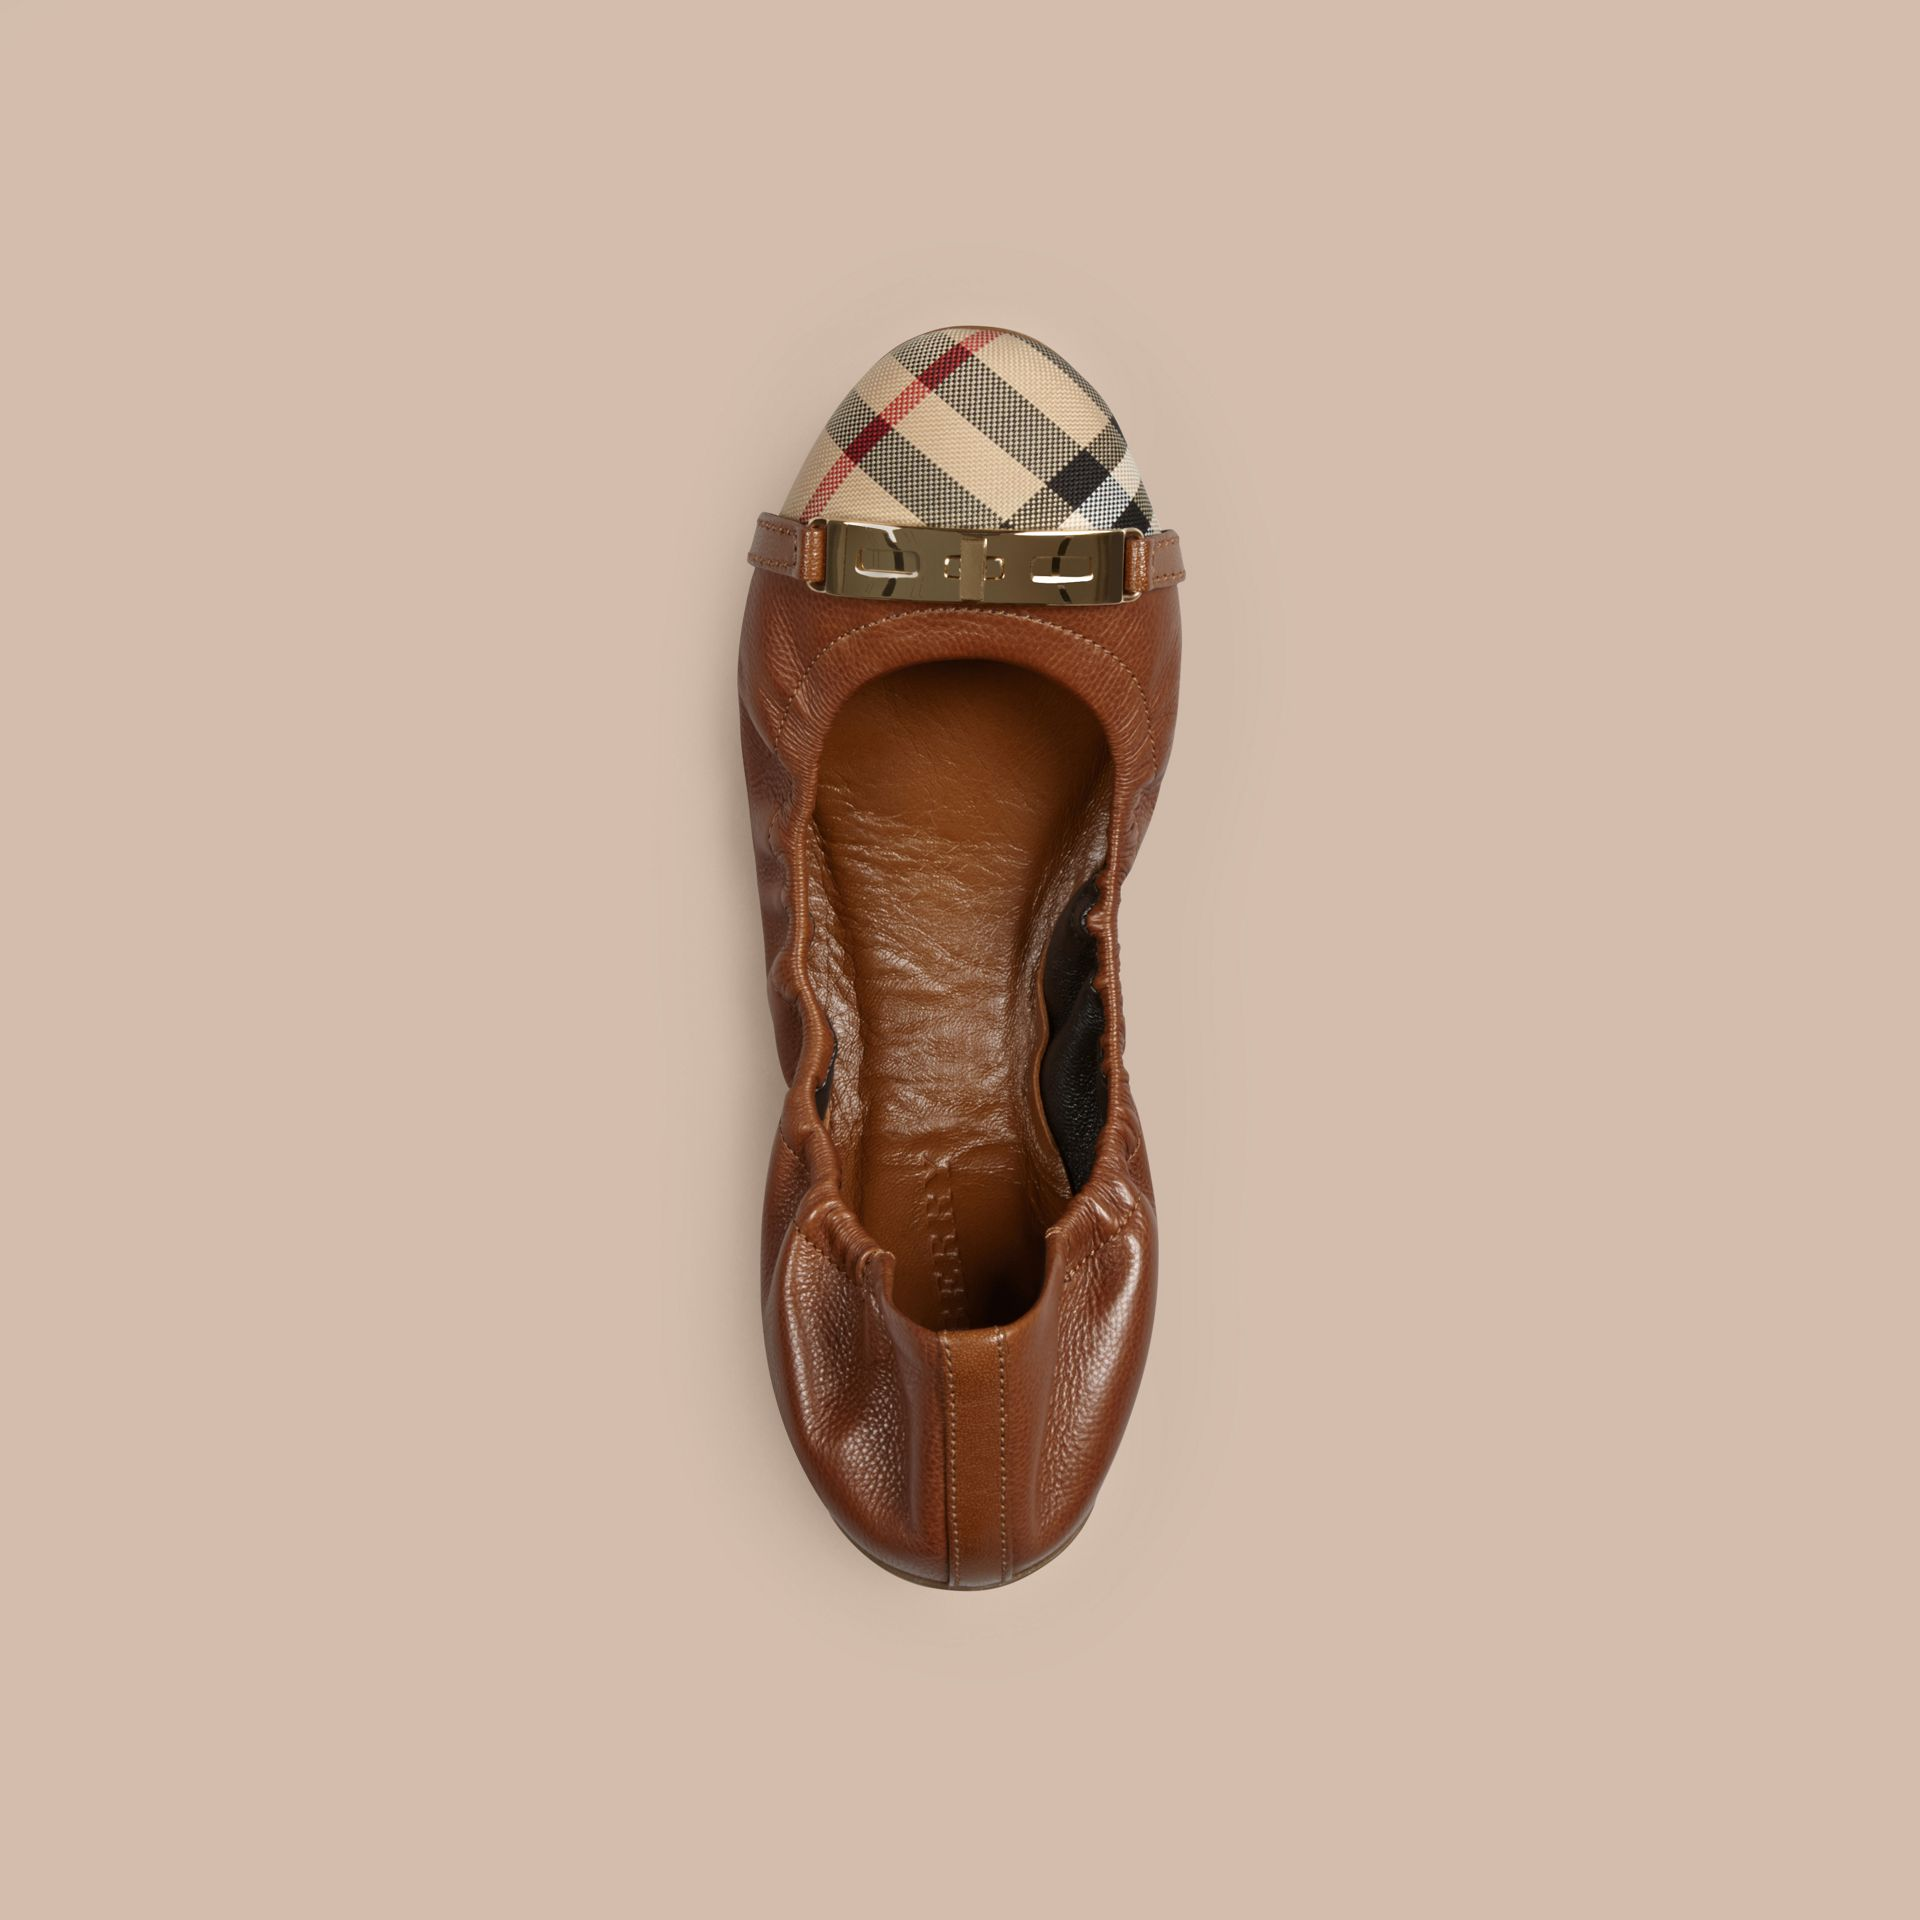 Ballerine in pelle con motivo Horseferry check (Marroncino) - Donna | Burberry - immagine della galleria 3